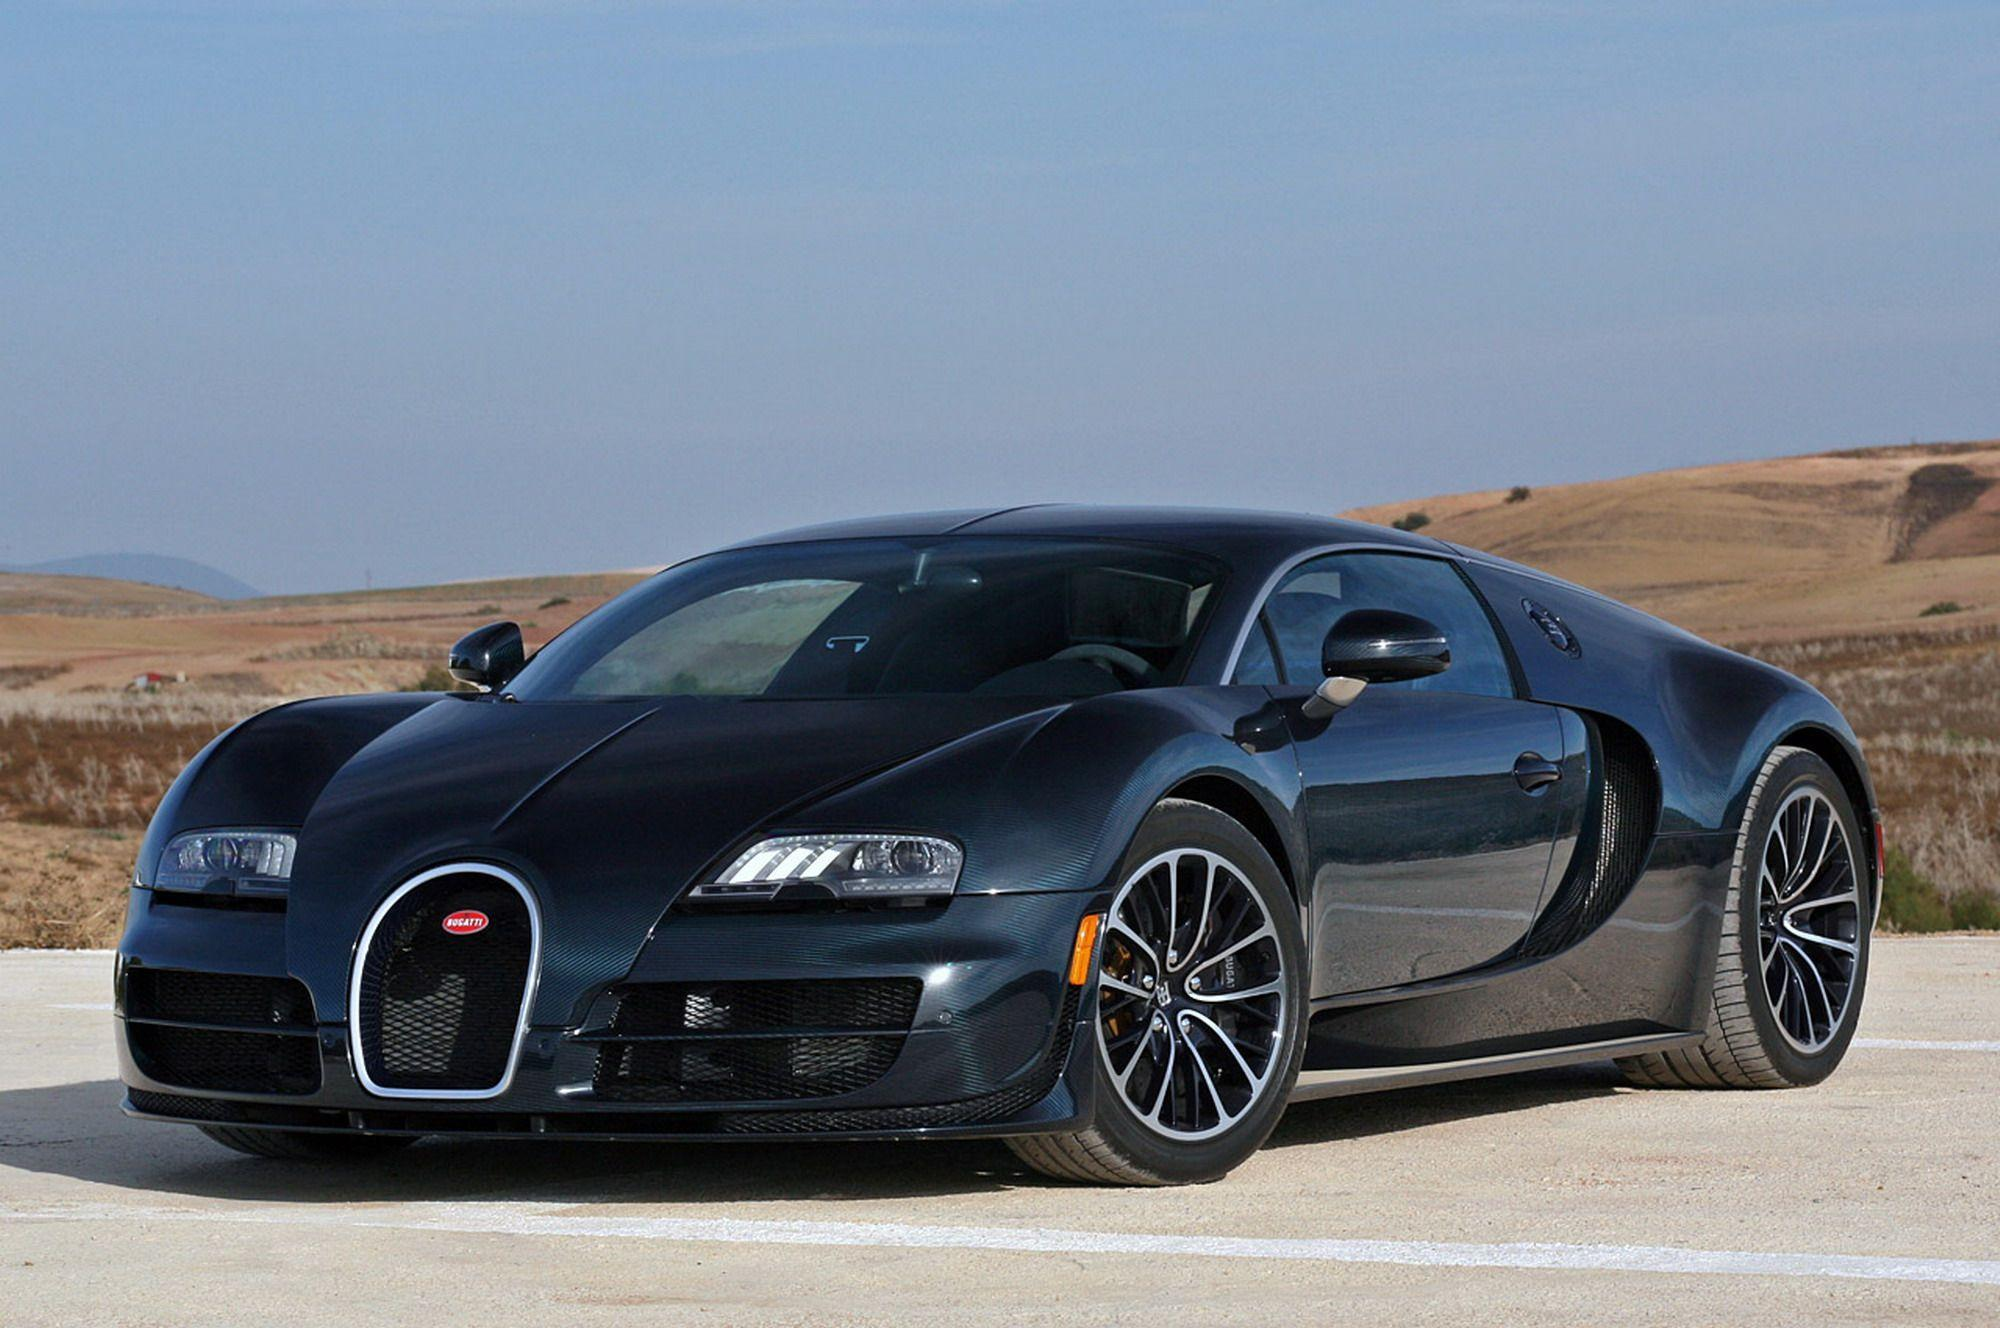 Nothing found for Bugatti Veyron Super Sport Wallpaper 818 High ...